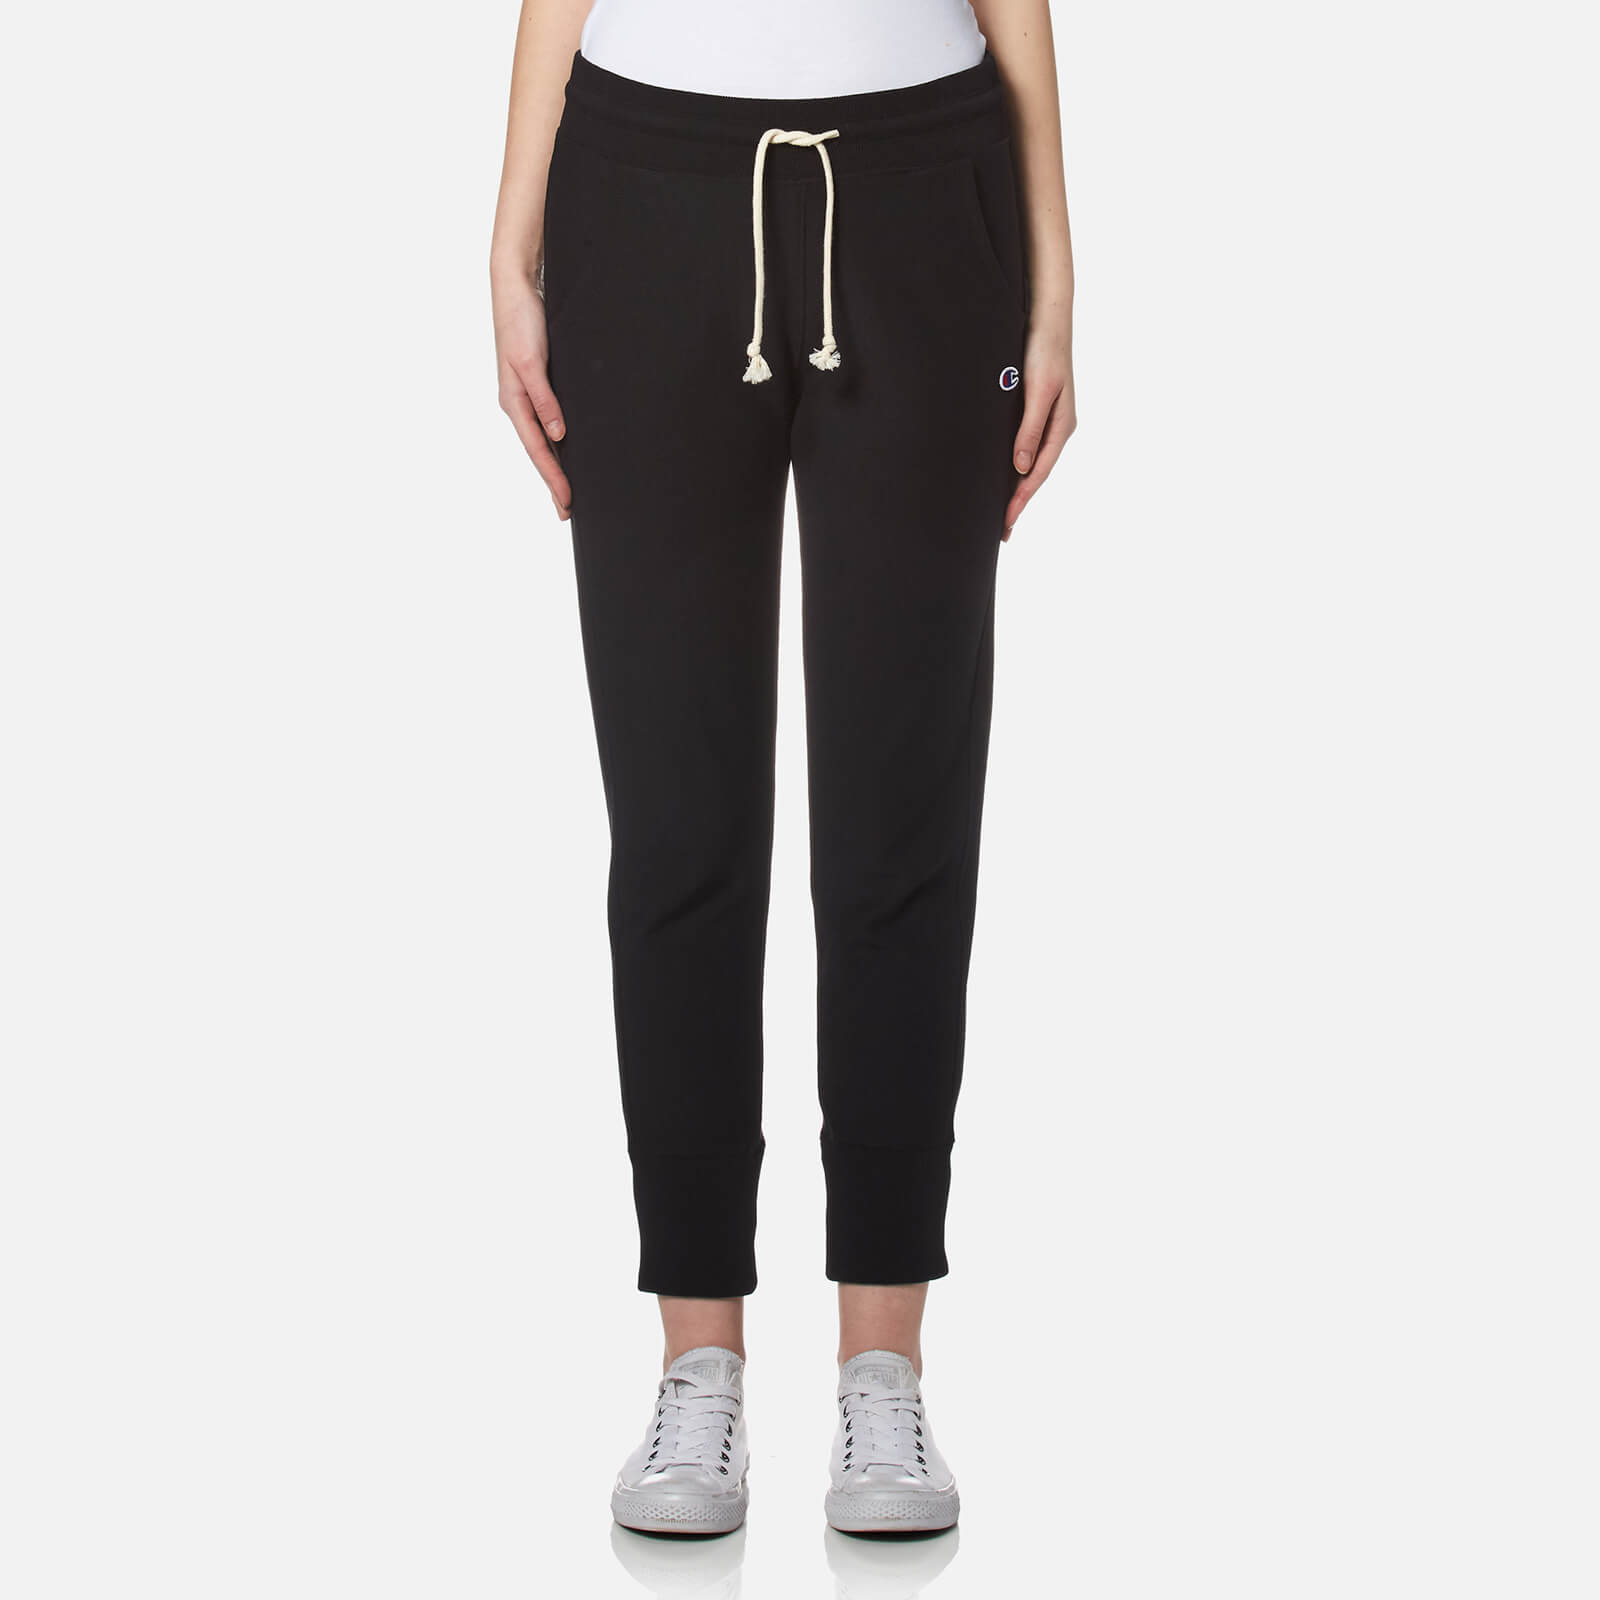 029b5f3b96f7 Champion Women s Rib Cuff Pants - Black - Free UK Delivery over £50